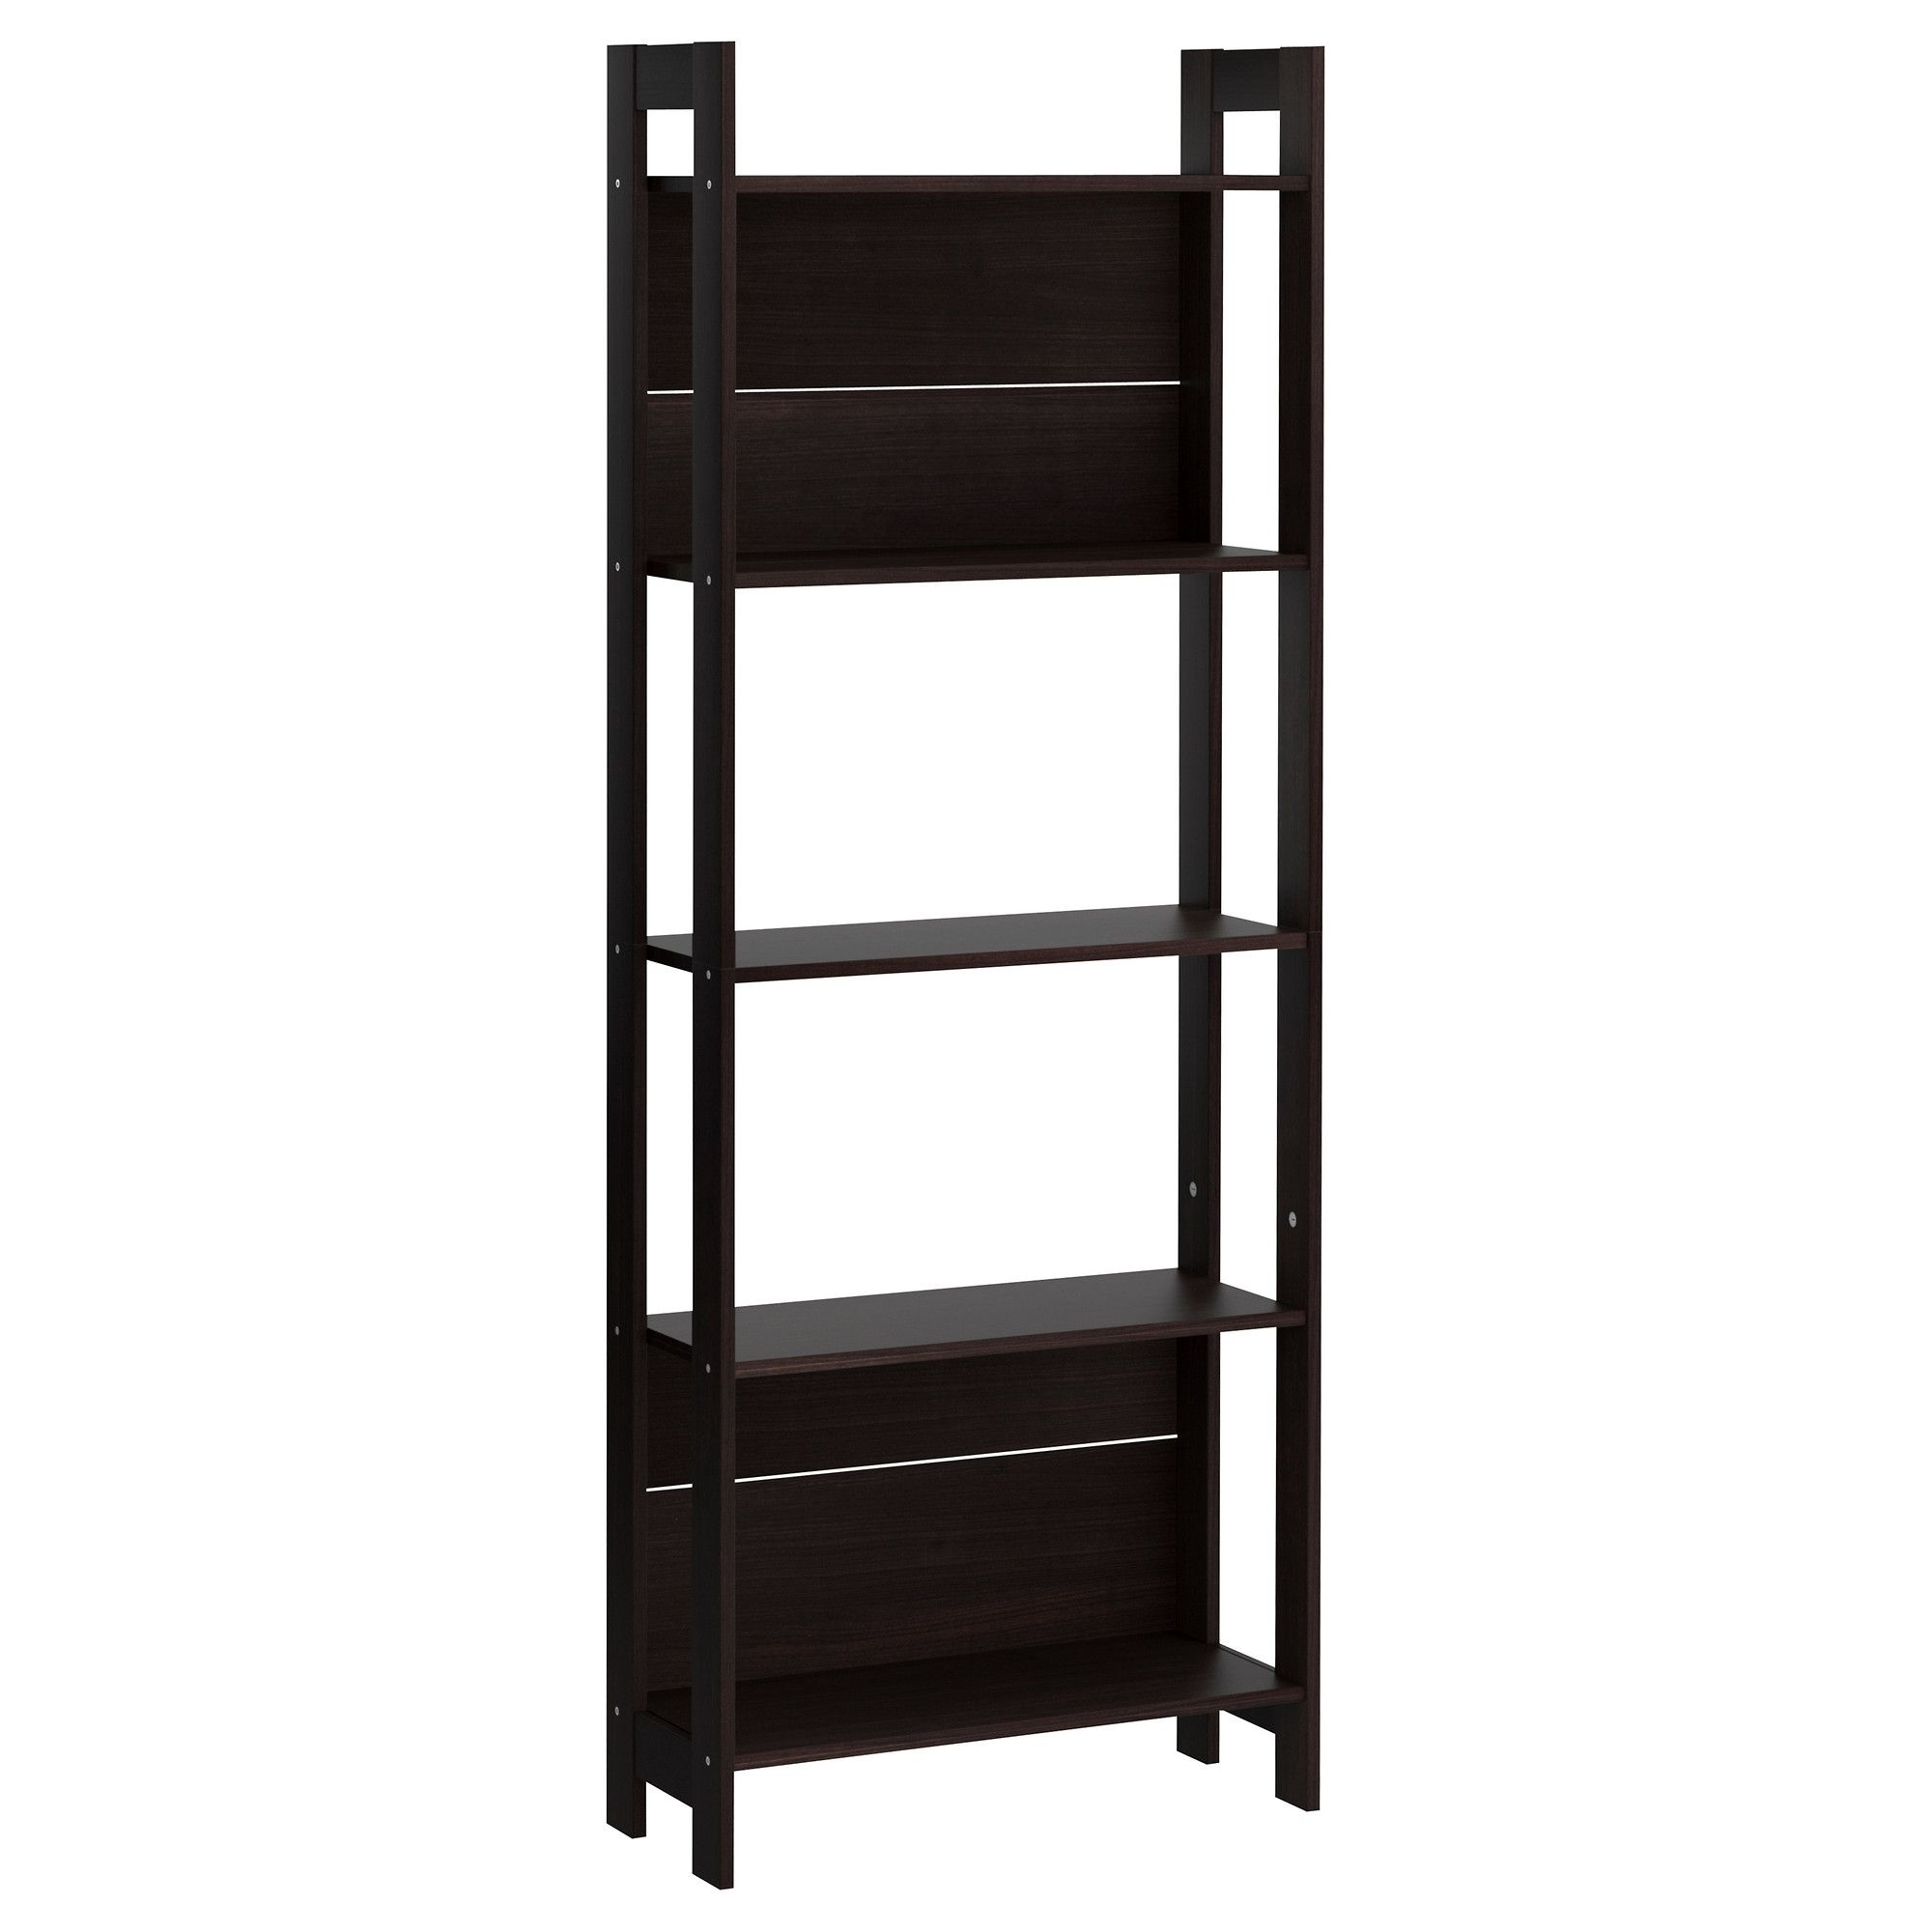 8 Inch Deep Bookcases For Well Known Laiva Bookcase, Black Brown (Gallery 4 of 15)